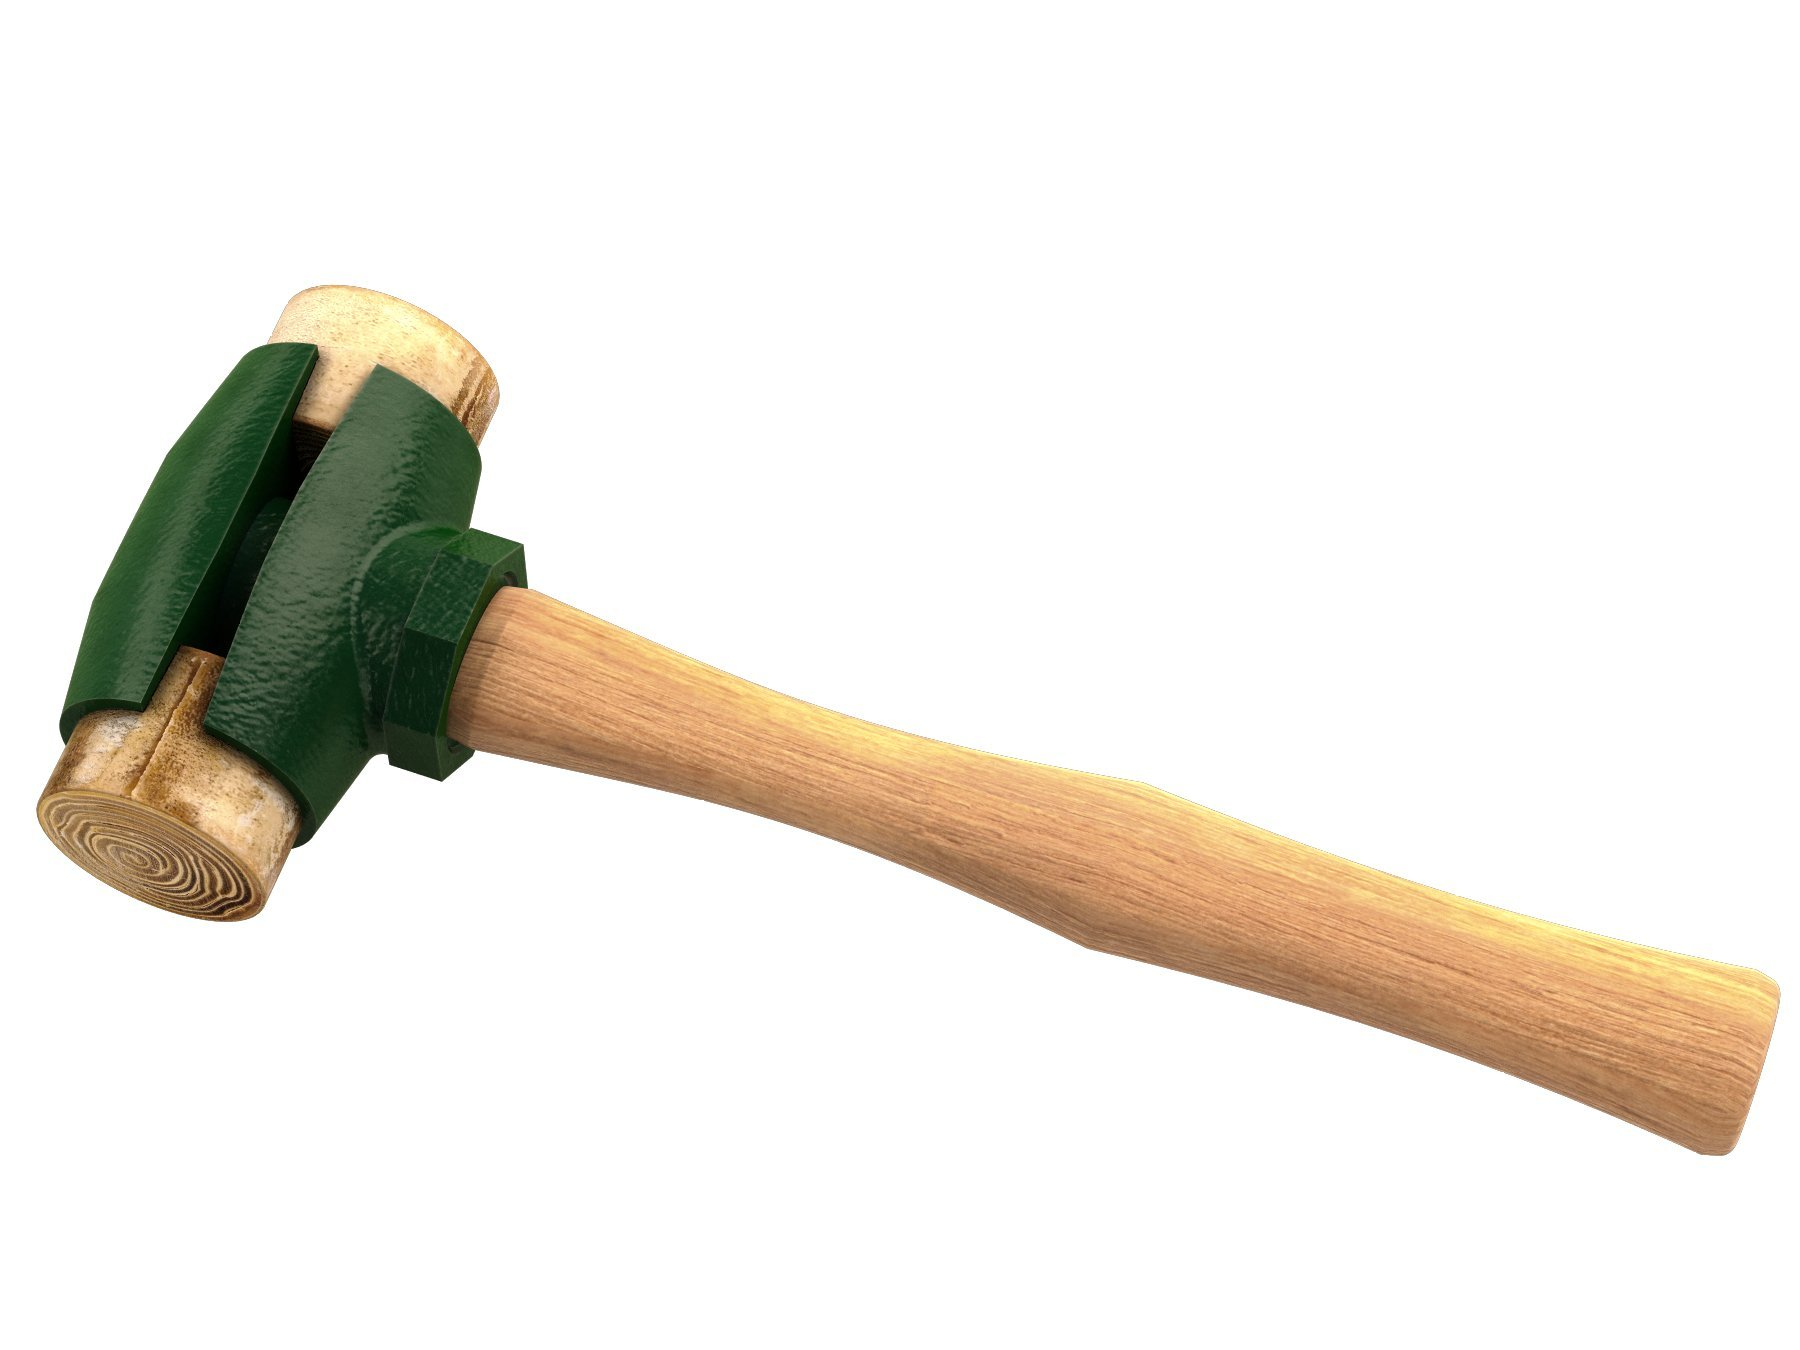 Garland 31003 2-3/4-Pound Rawhide Face Hammer with Wood Handle